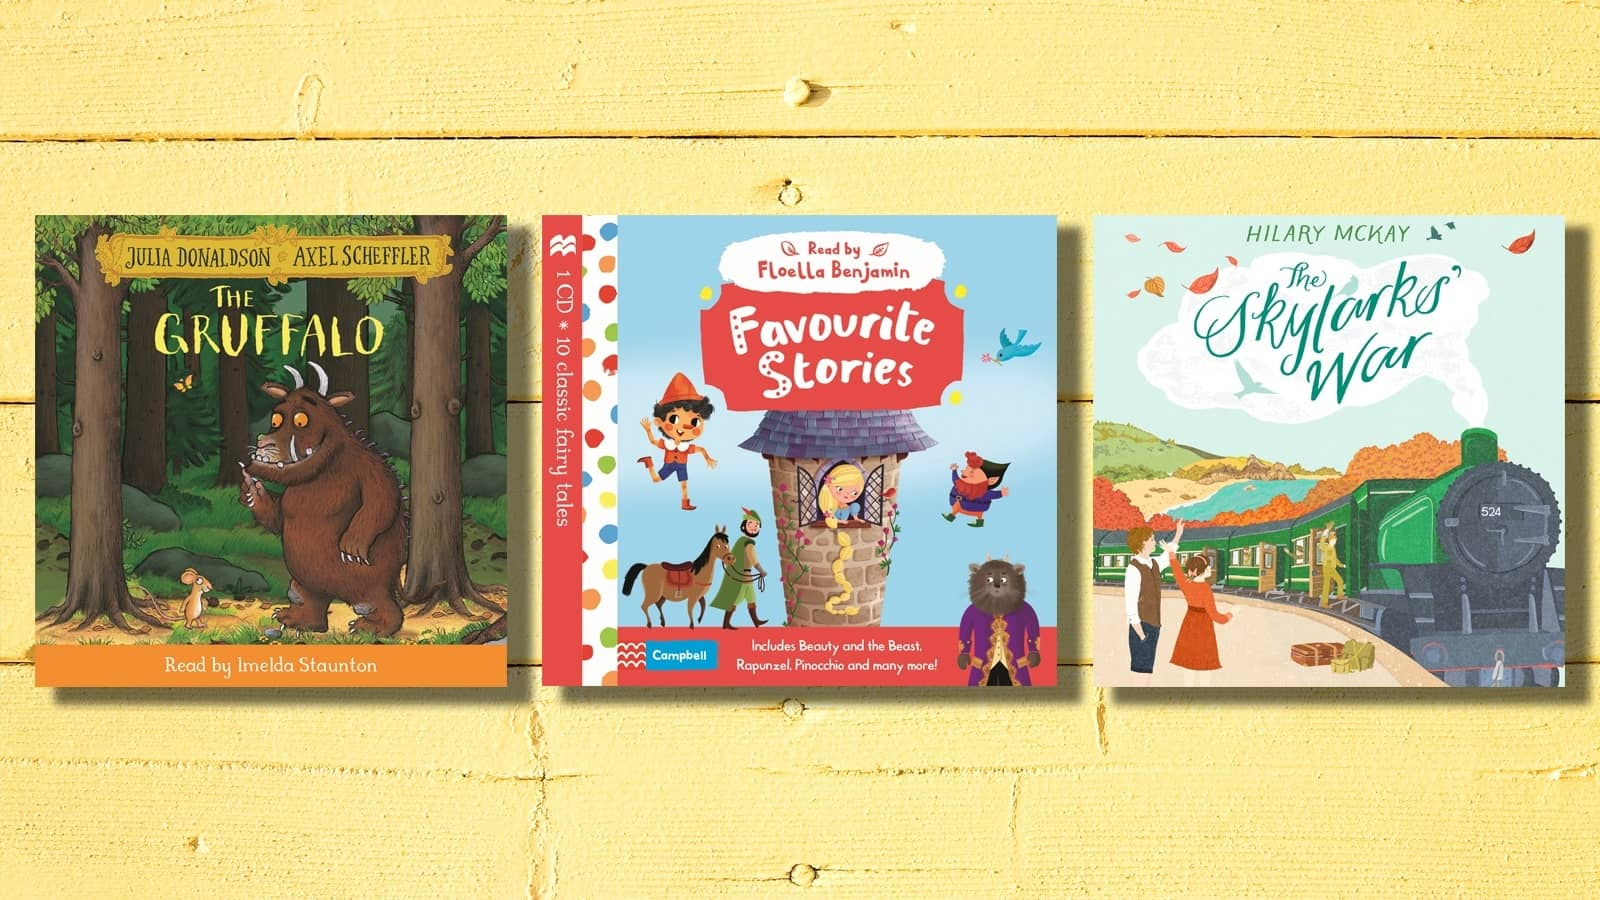 Book covers of The Gruffalo, Favourite Stories and the Skylark's War on a yellow background